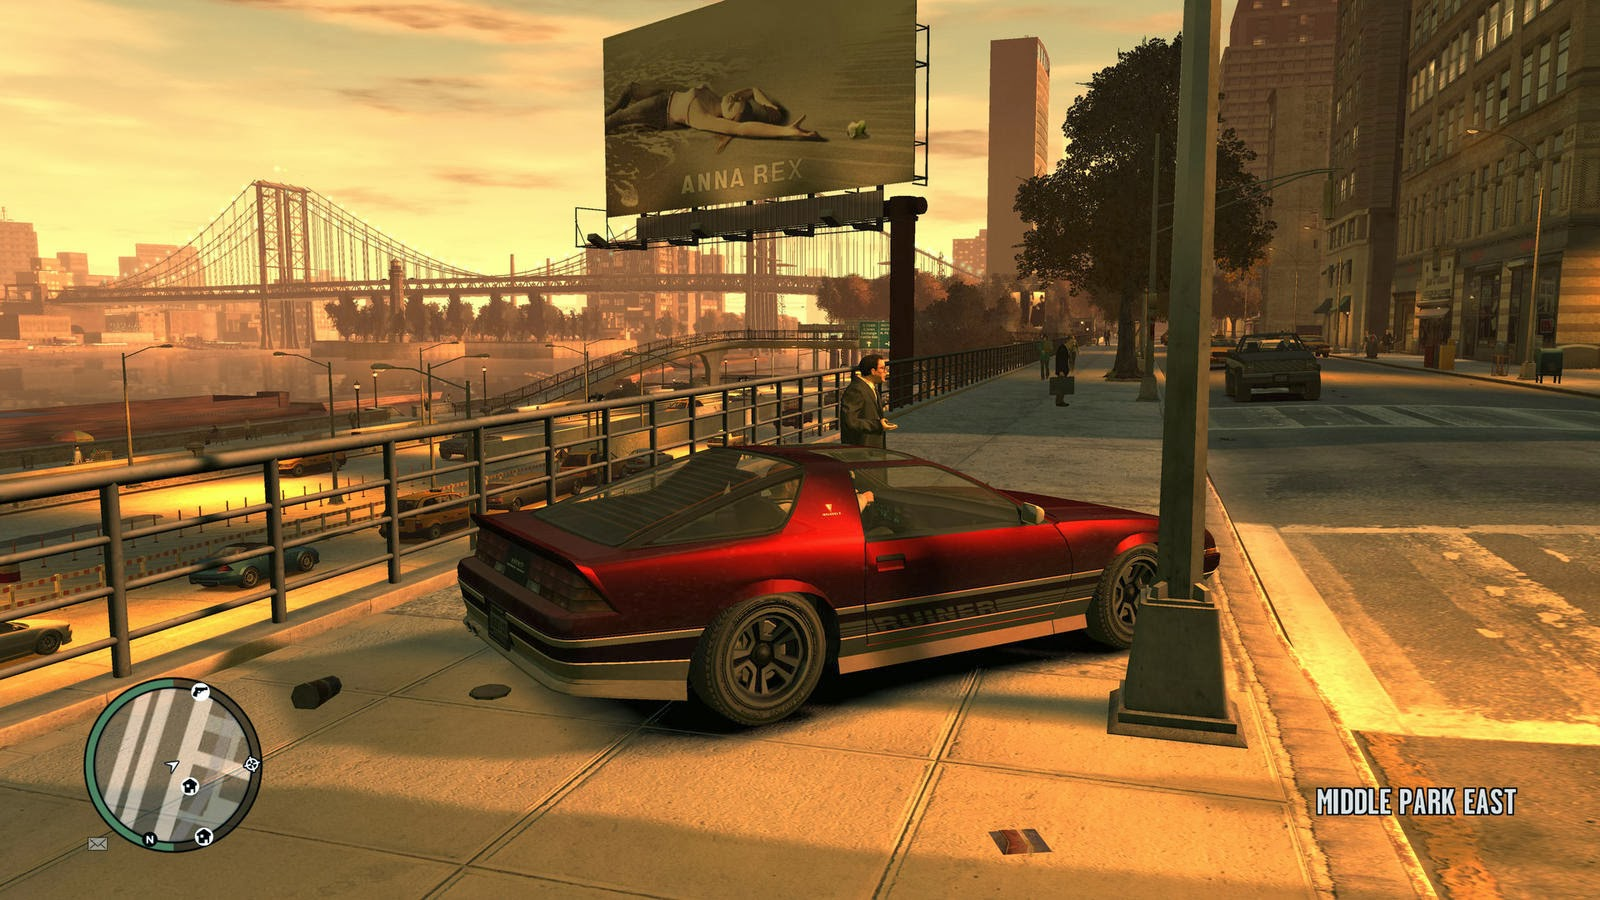 Hd Car Wallpapers Free Download Zip Grand Theft Auto Iv Game Free Download Full Version For Pc